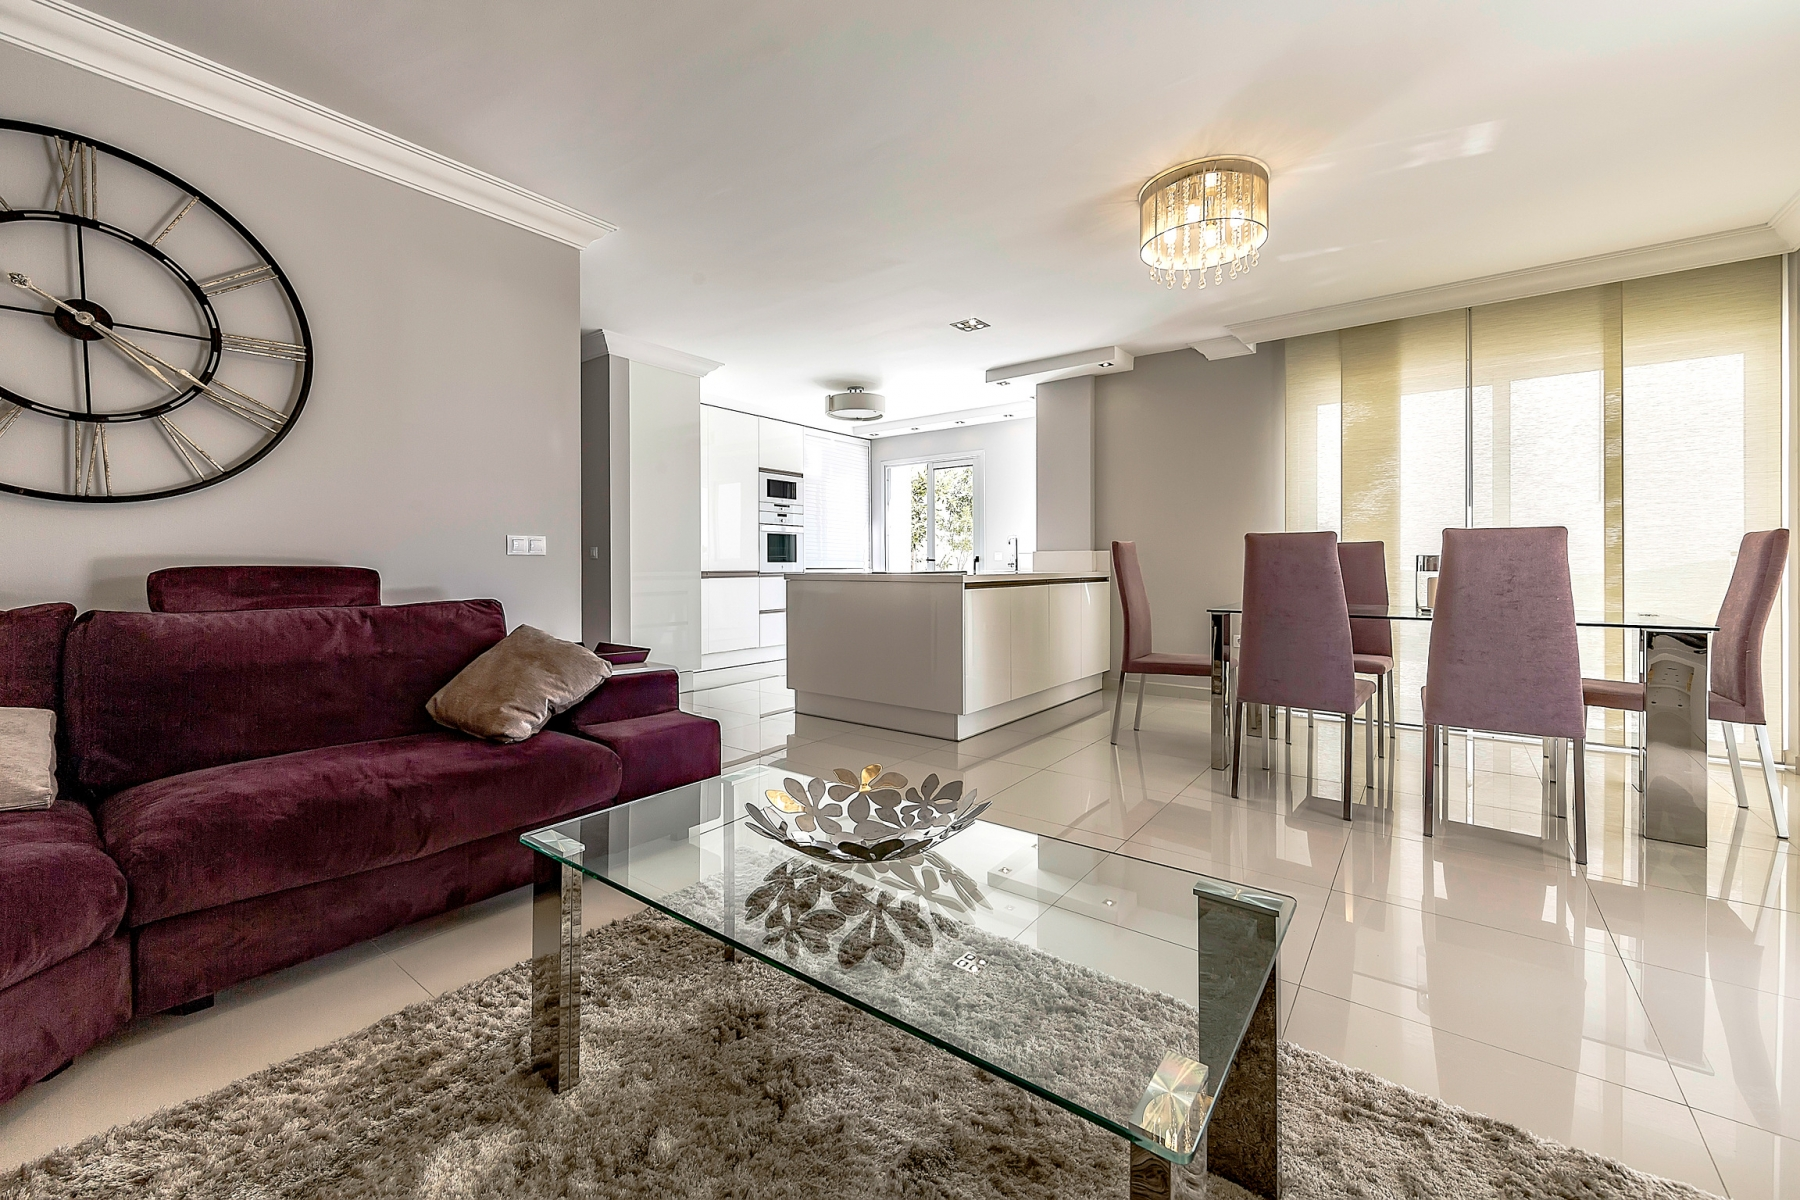 Properties for Sale in Tenerife, Canary Islands, Spain   SylkWayStar Real Estate. Luxury villa in the fashionable area of the south of the island of Tenerife – Madroñal.. Image-22814